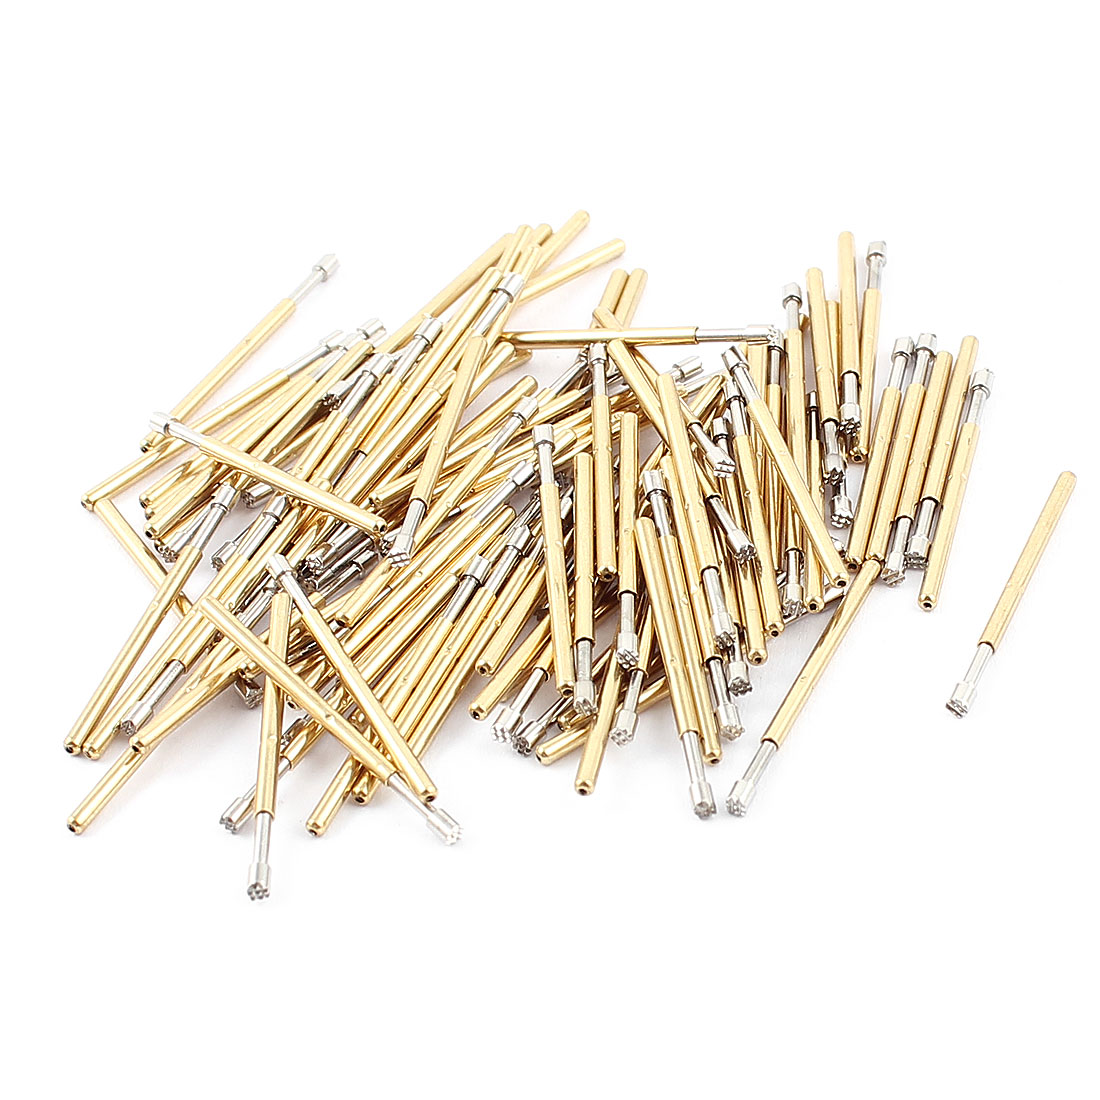 100Pcs P60H 1.5mm Dia Crown Tip Spring Test Probes Testing Pins Gold Tone 24mm Long for PCB Borad